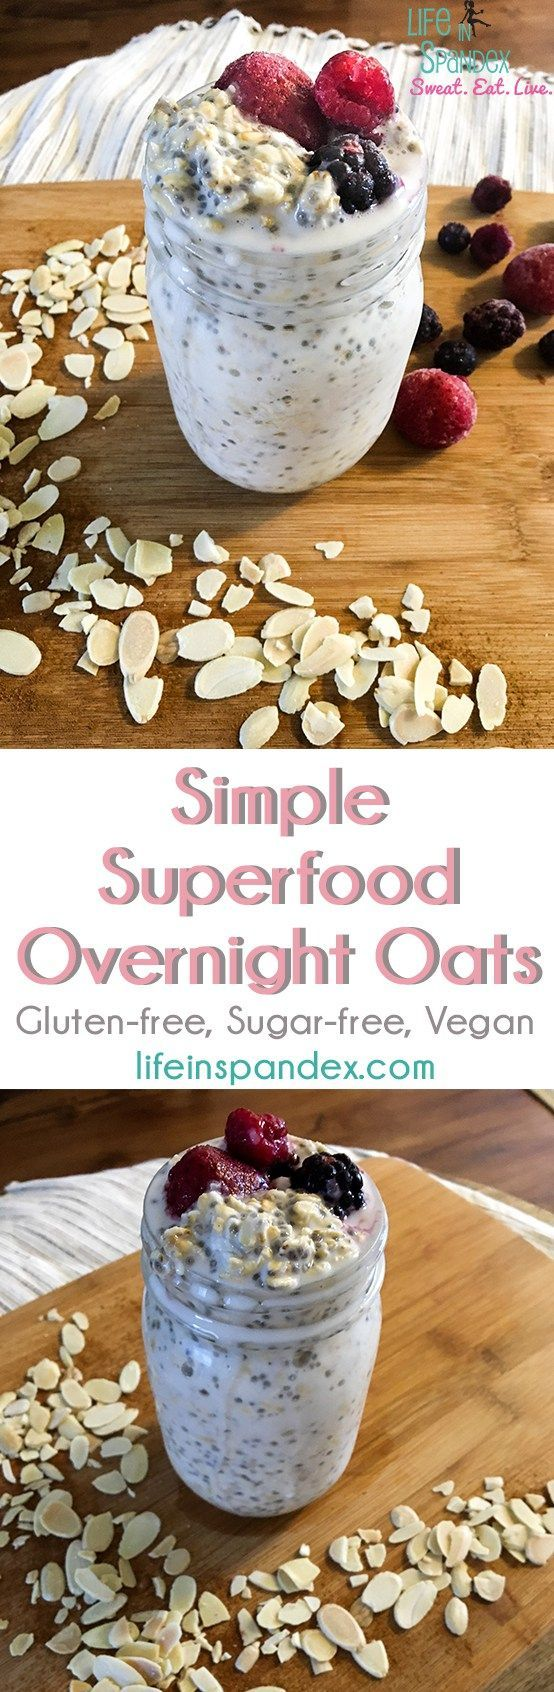 Simple Superfood Overnight Oats - The best post-workout, flat tummy breakfast to beat the summer heat, reduce bloating, and help you lose weight. #healthyeatingtoloseweightbreakfast